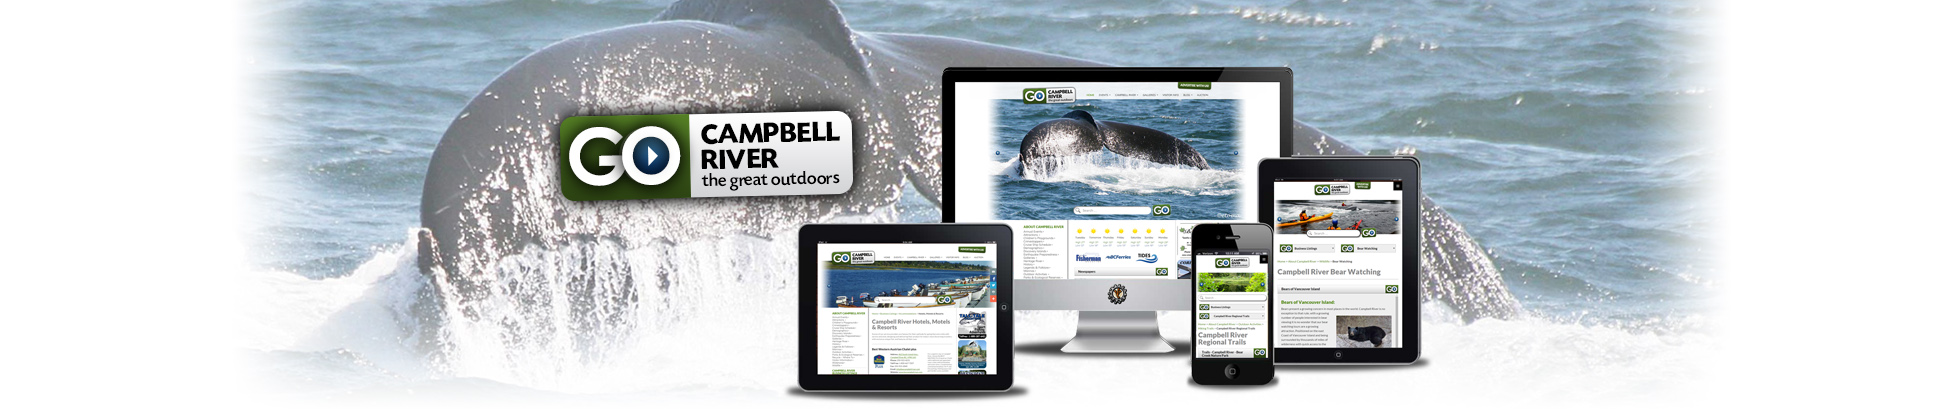 Website design for gocampbellriver.com